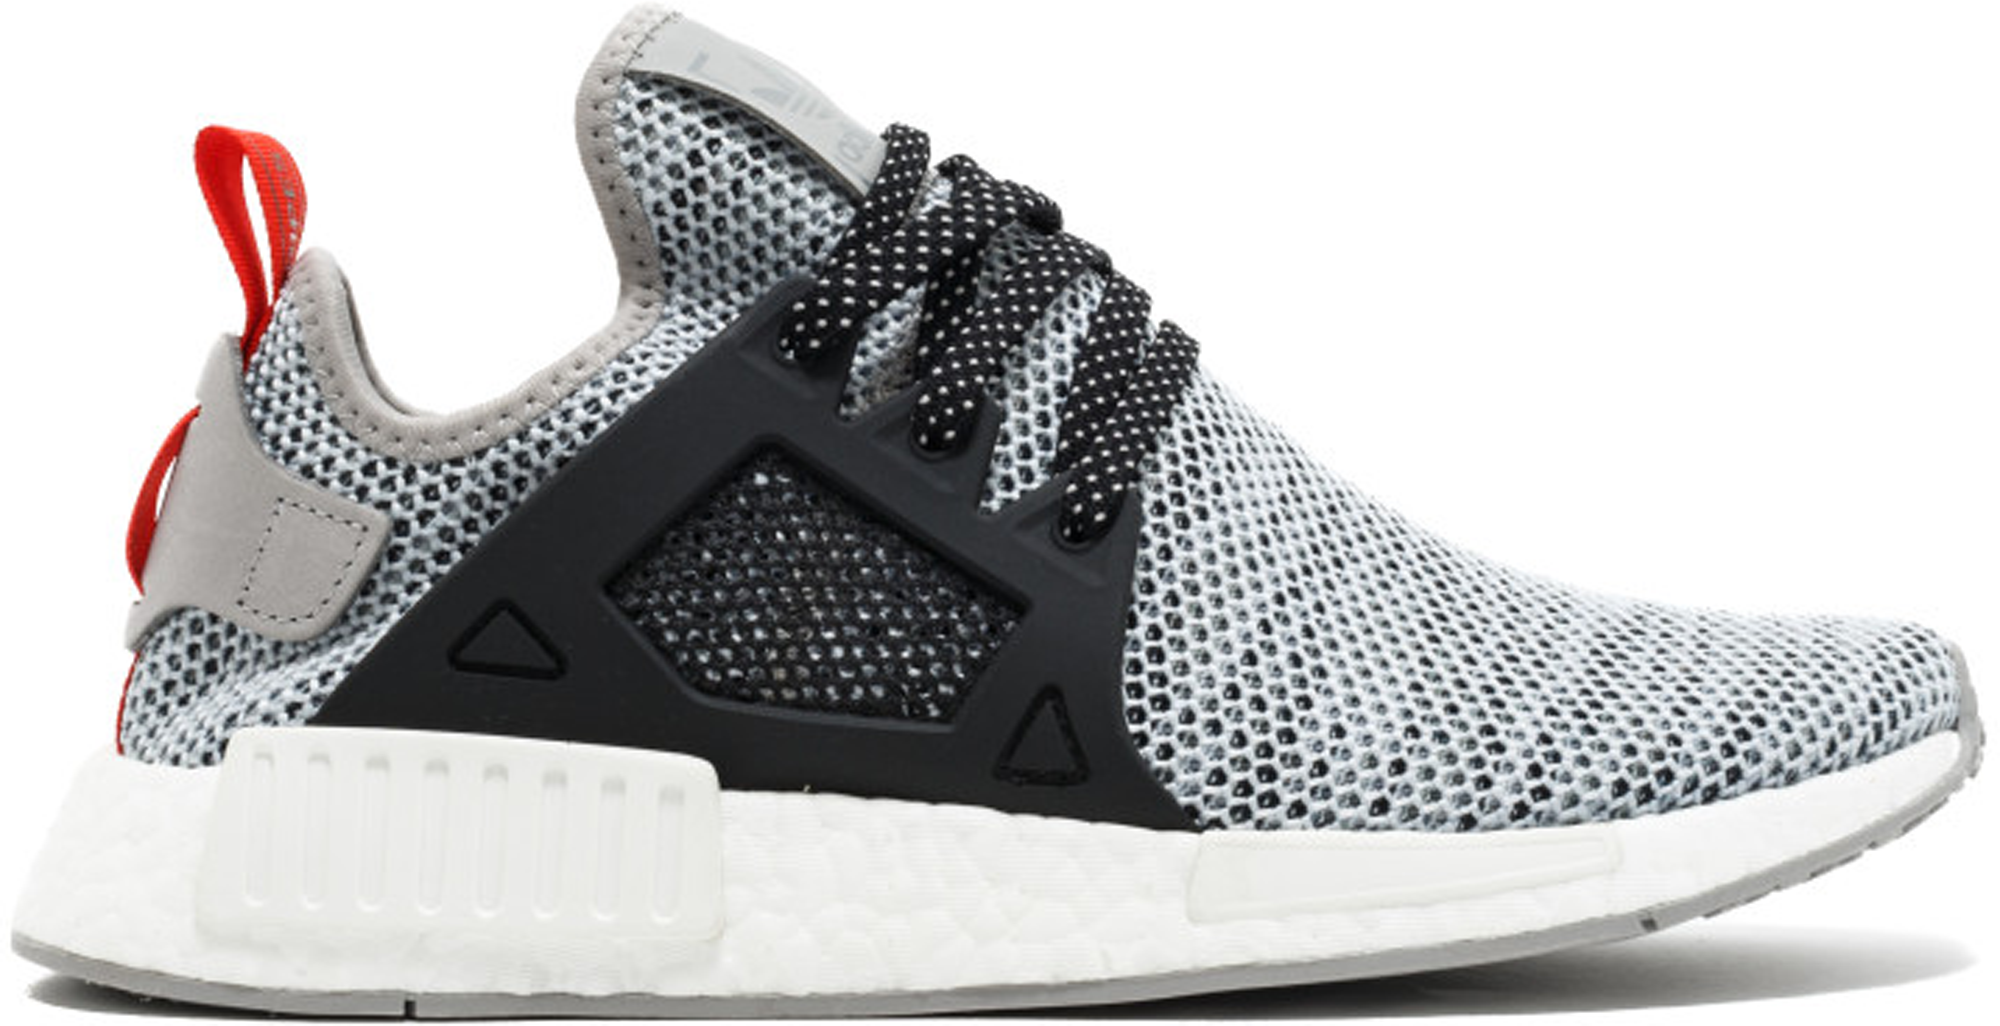 adidas NMD XR1 JD Sports Grey Black